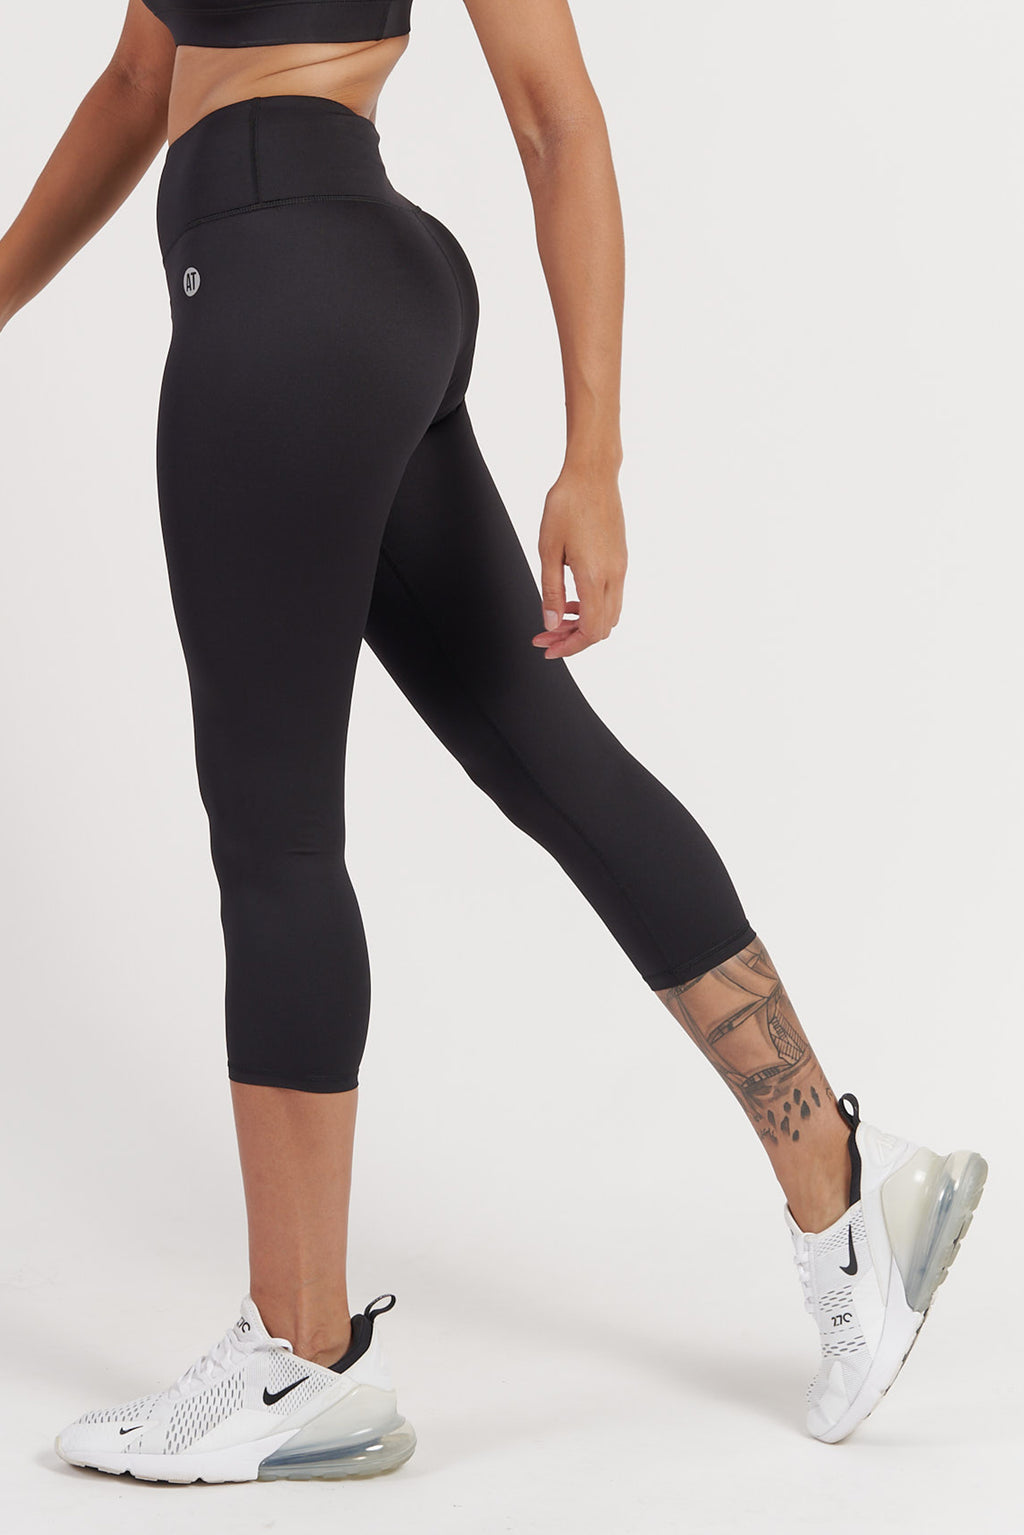 full-length-gym-tights-black-small-back2